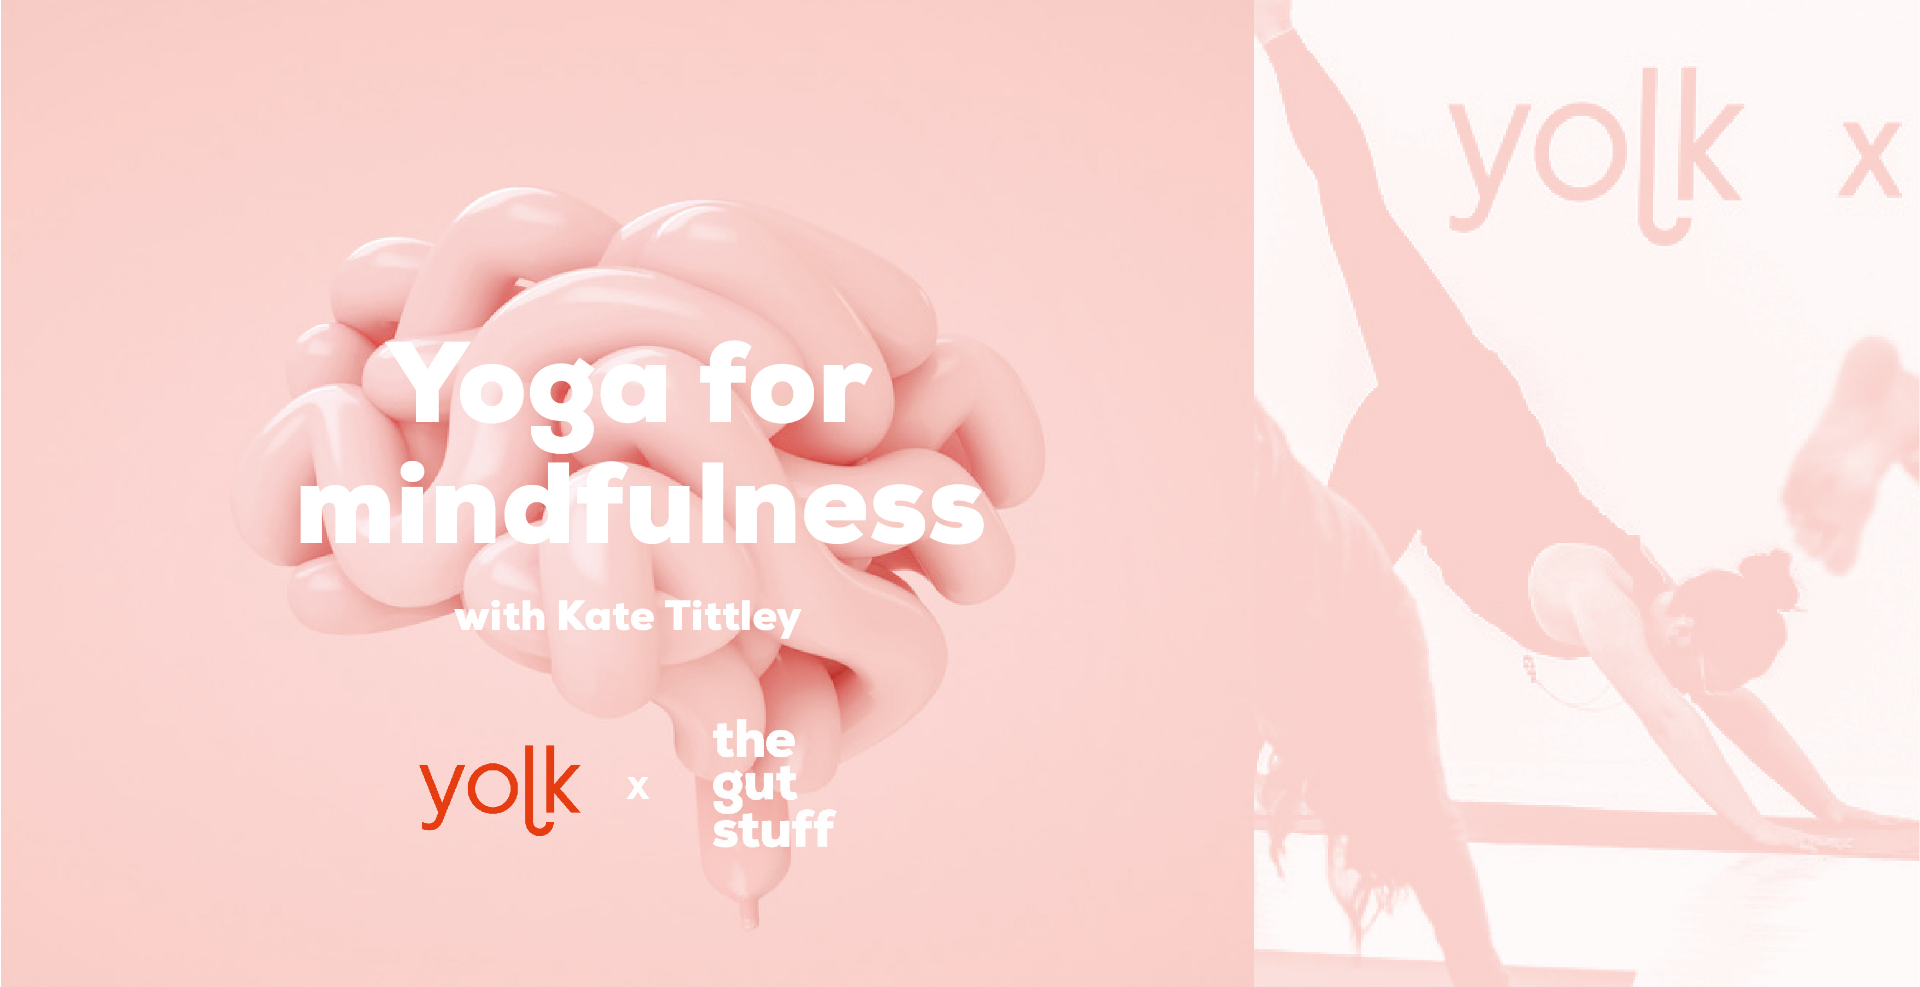 Yoga by Yolk - Yoga for mindfulness